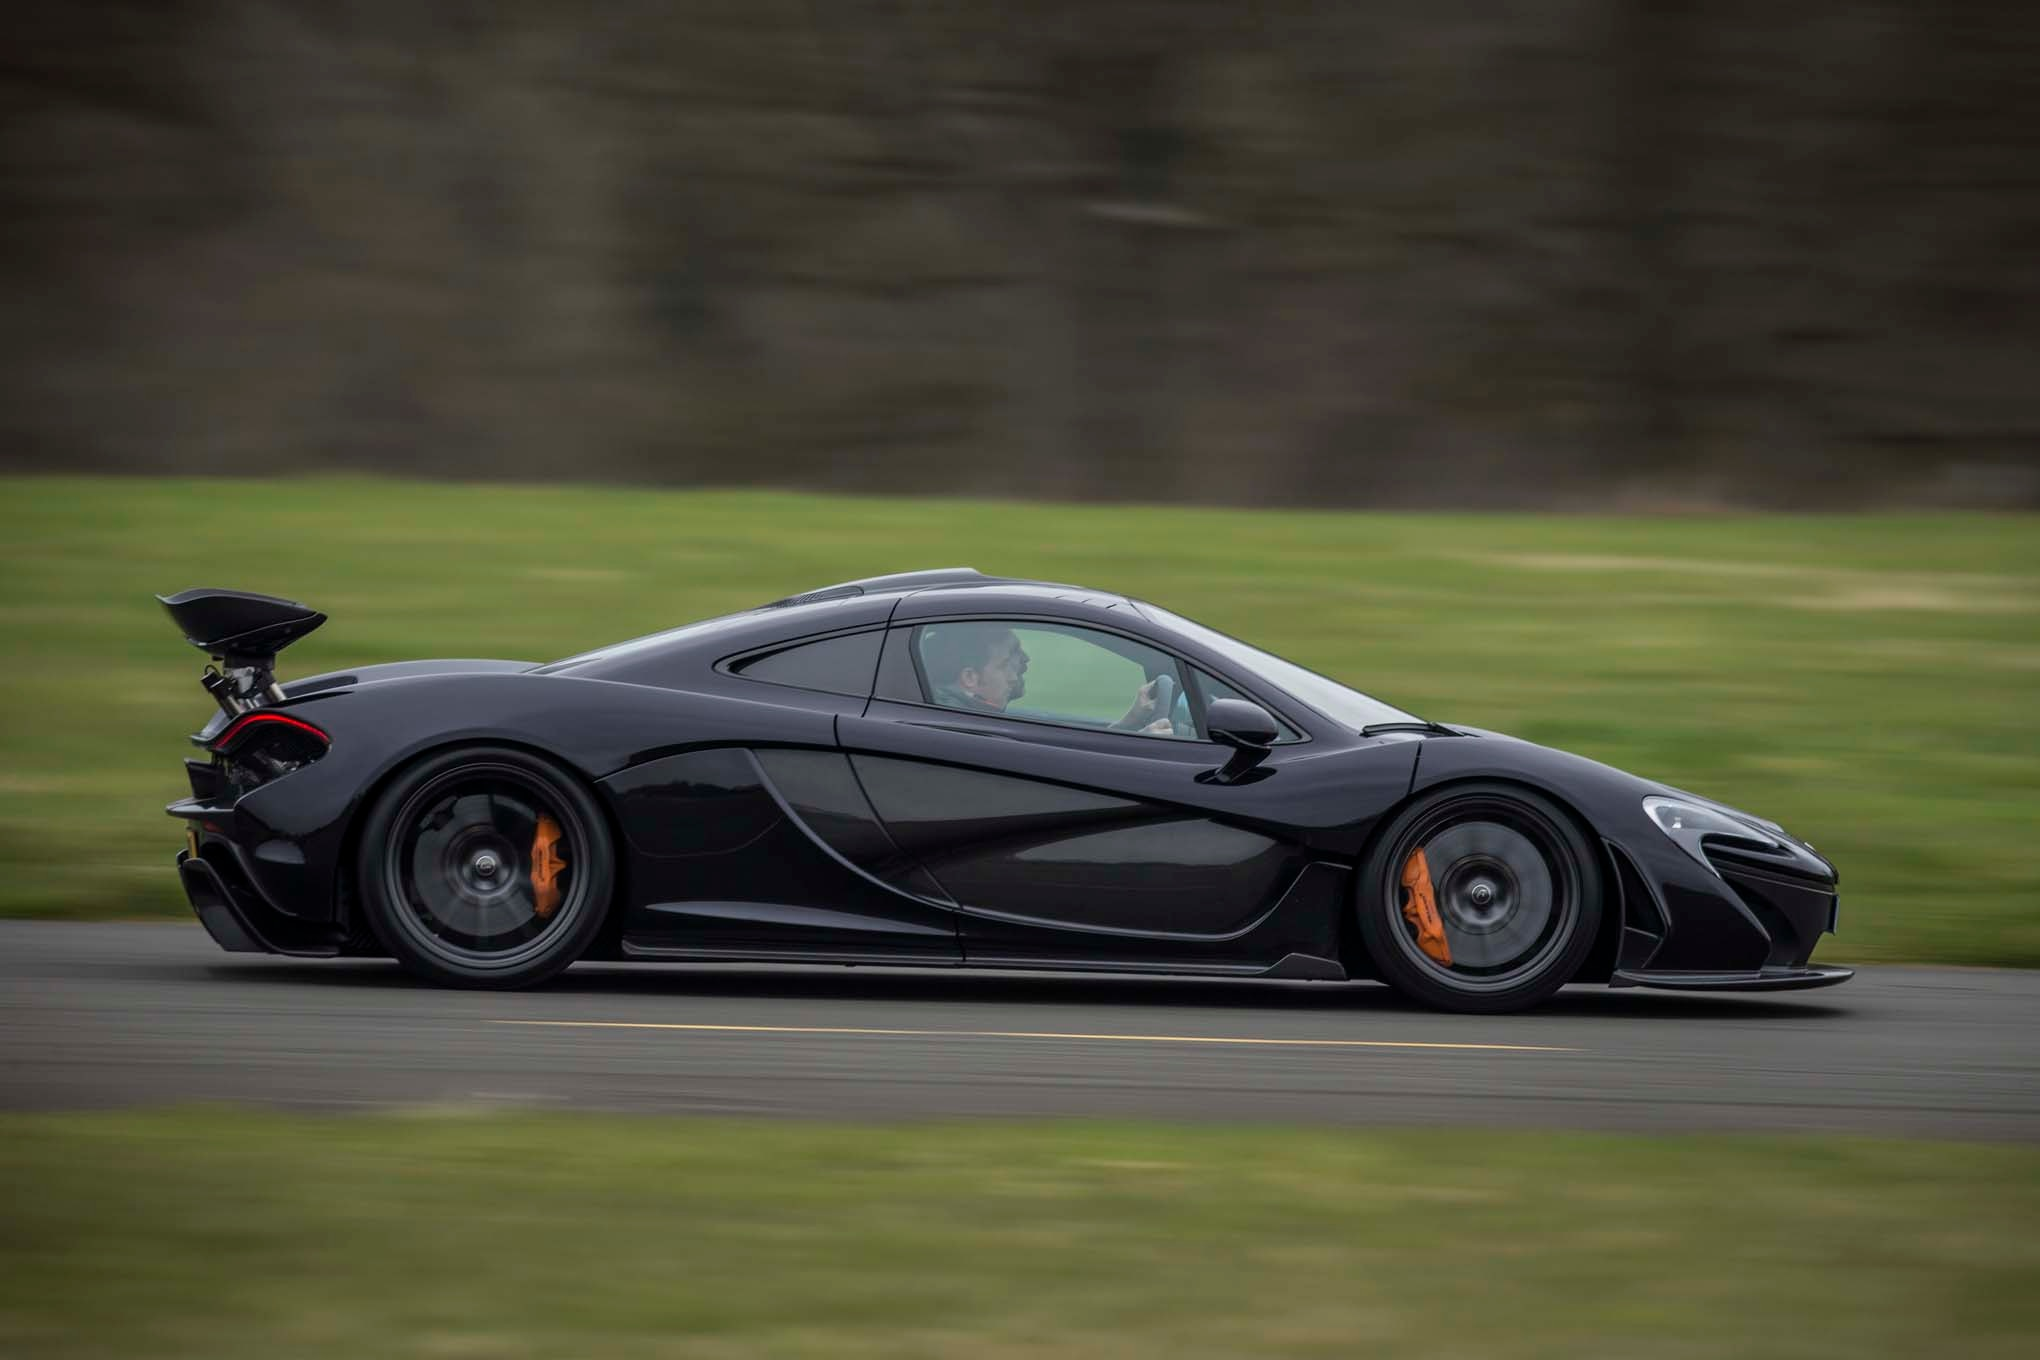 Exceptional McLaren P1 Open Doors Fire Abstract Car 2013 | El Tony